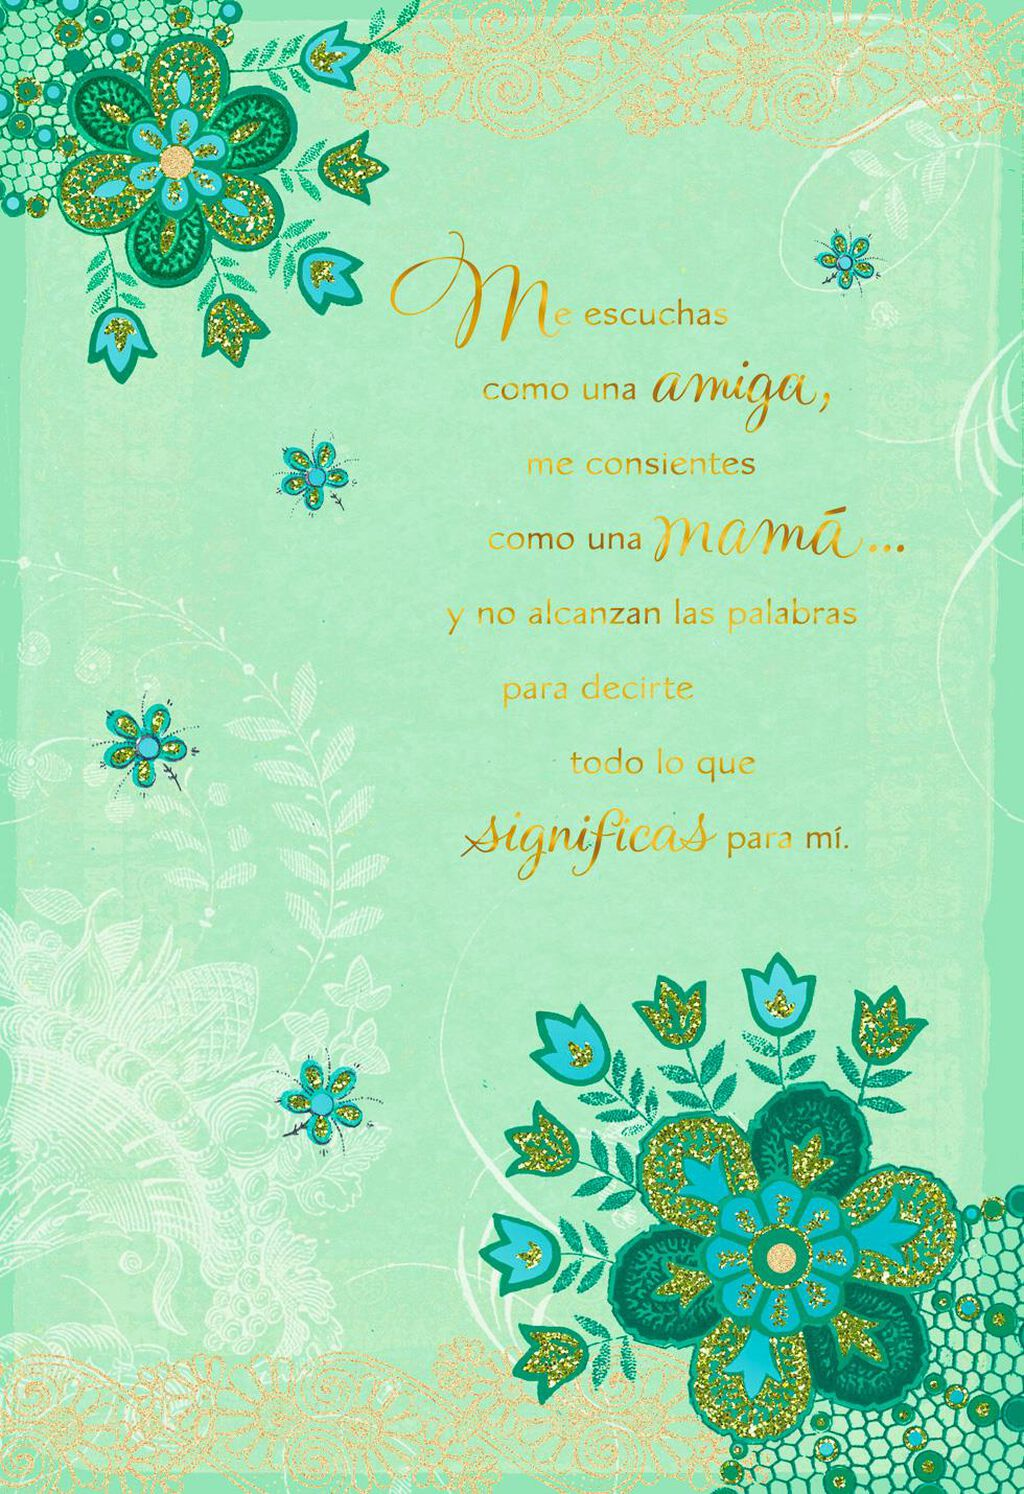 Like A Mom Spanish Language Mothers Day Card From Friend Greeting